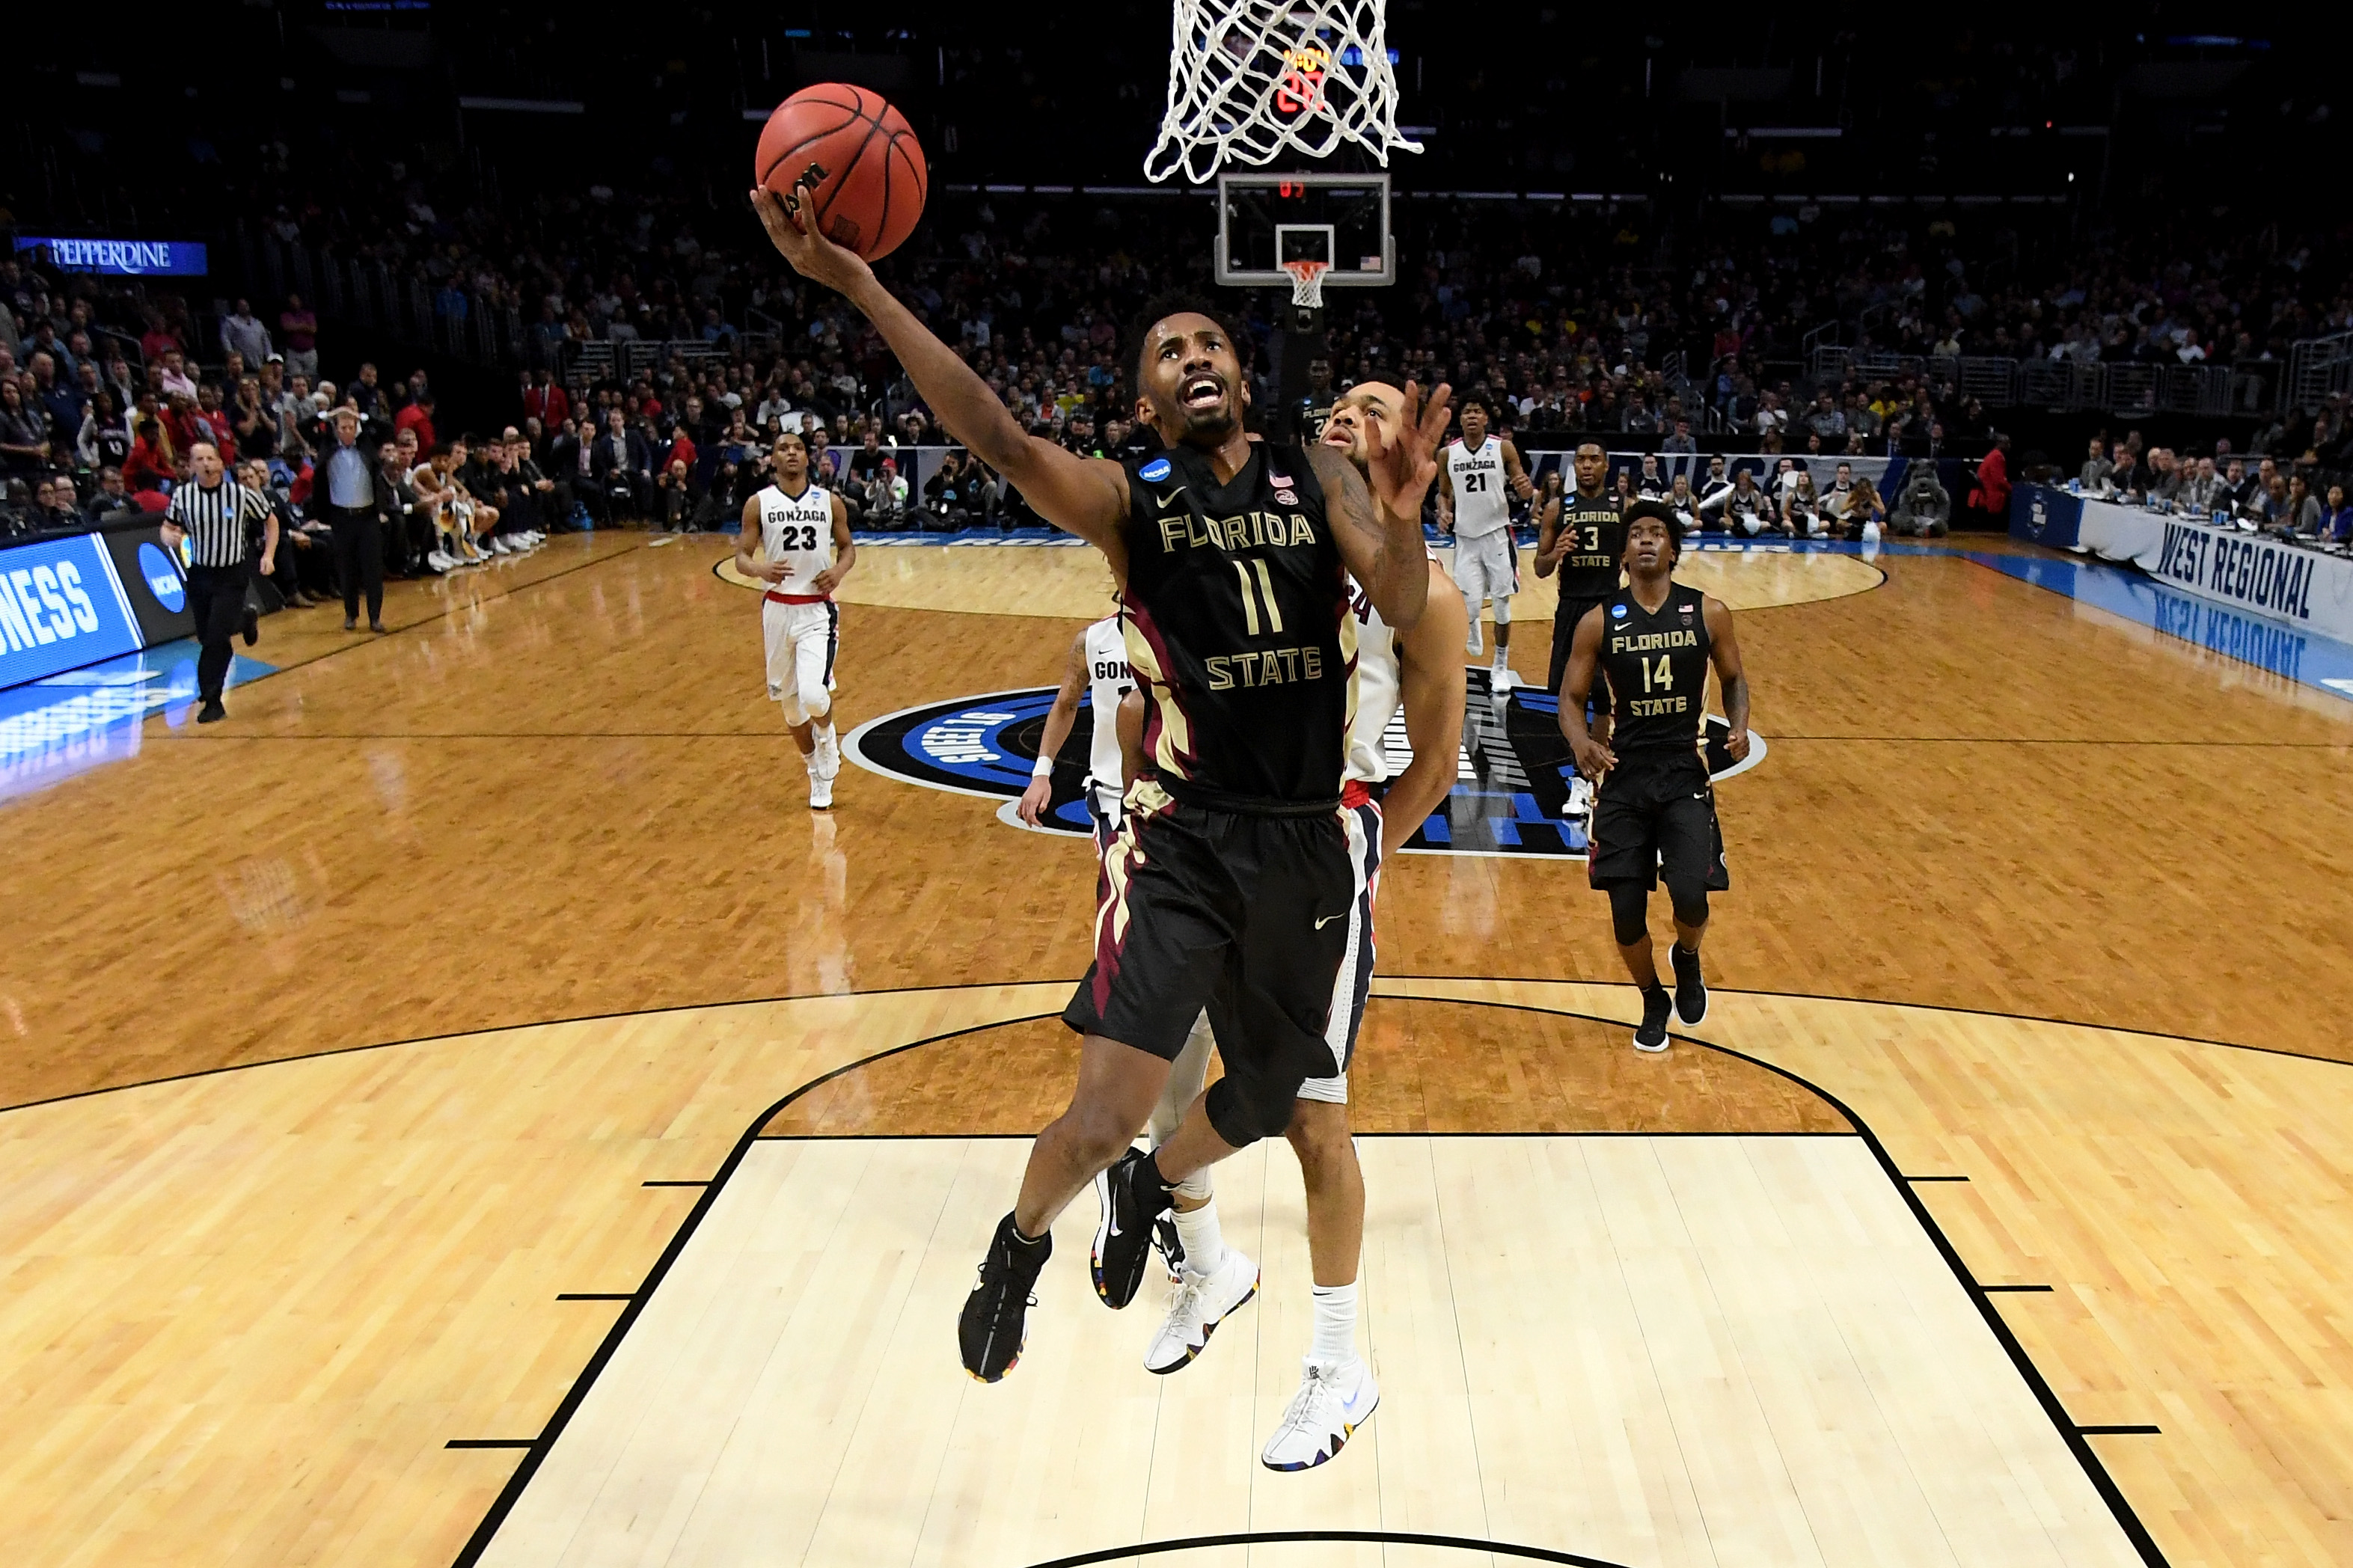 From Sweet to Elite: Florida State dominates Gonzaga